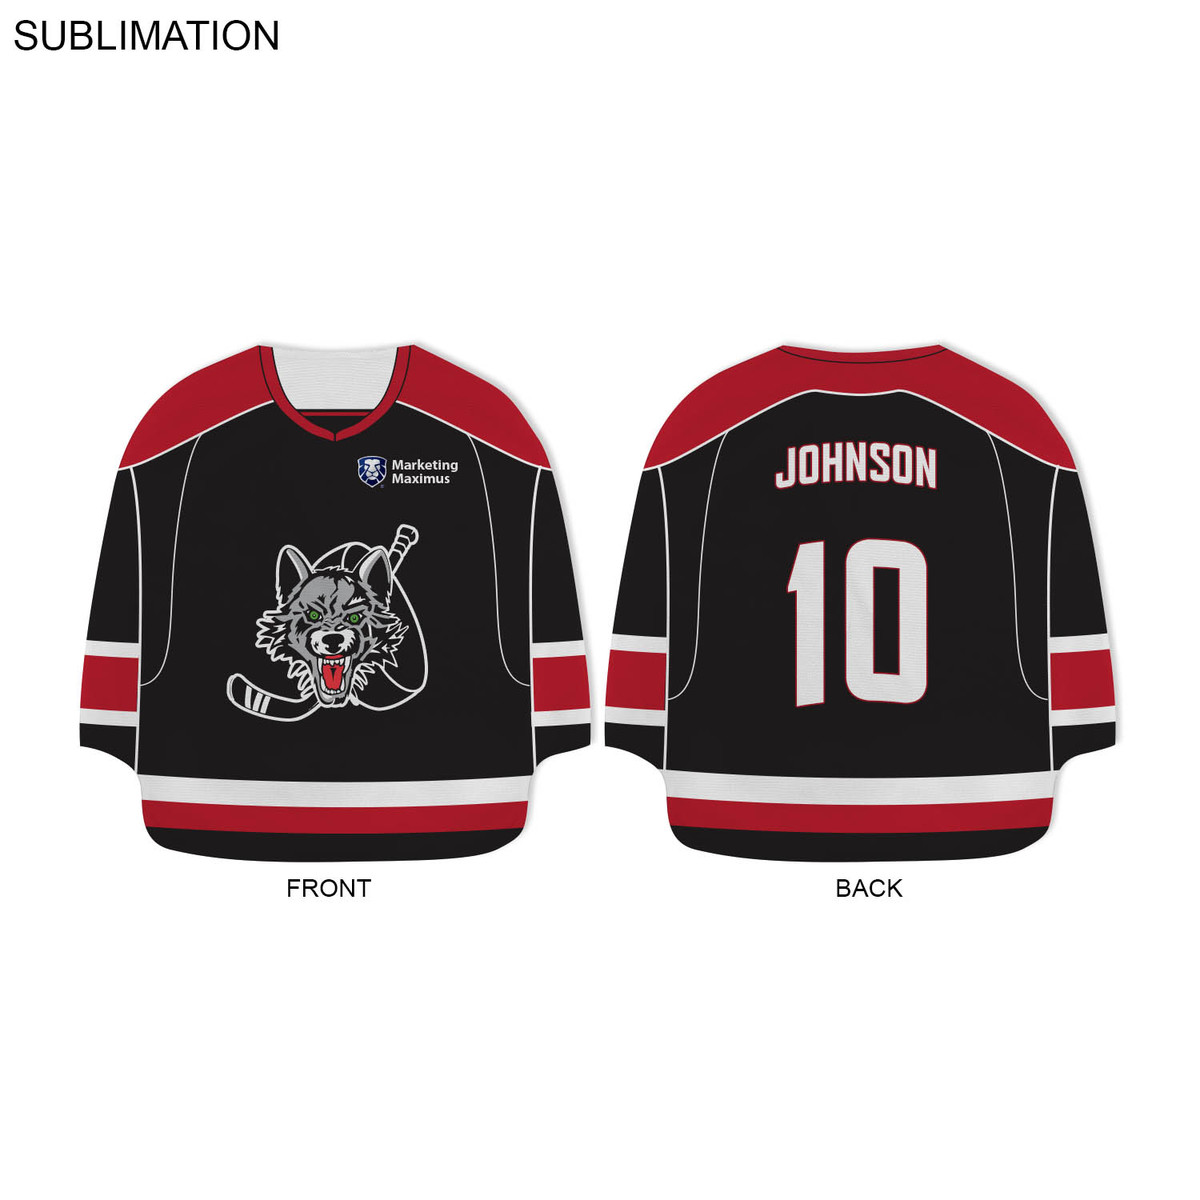 Hockey Jersey Shape Rally Towel 17x17 Sublimated Or